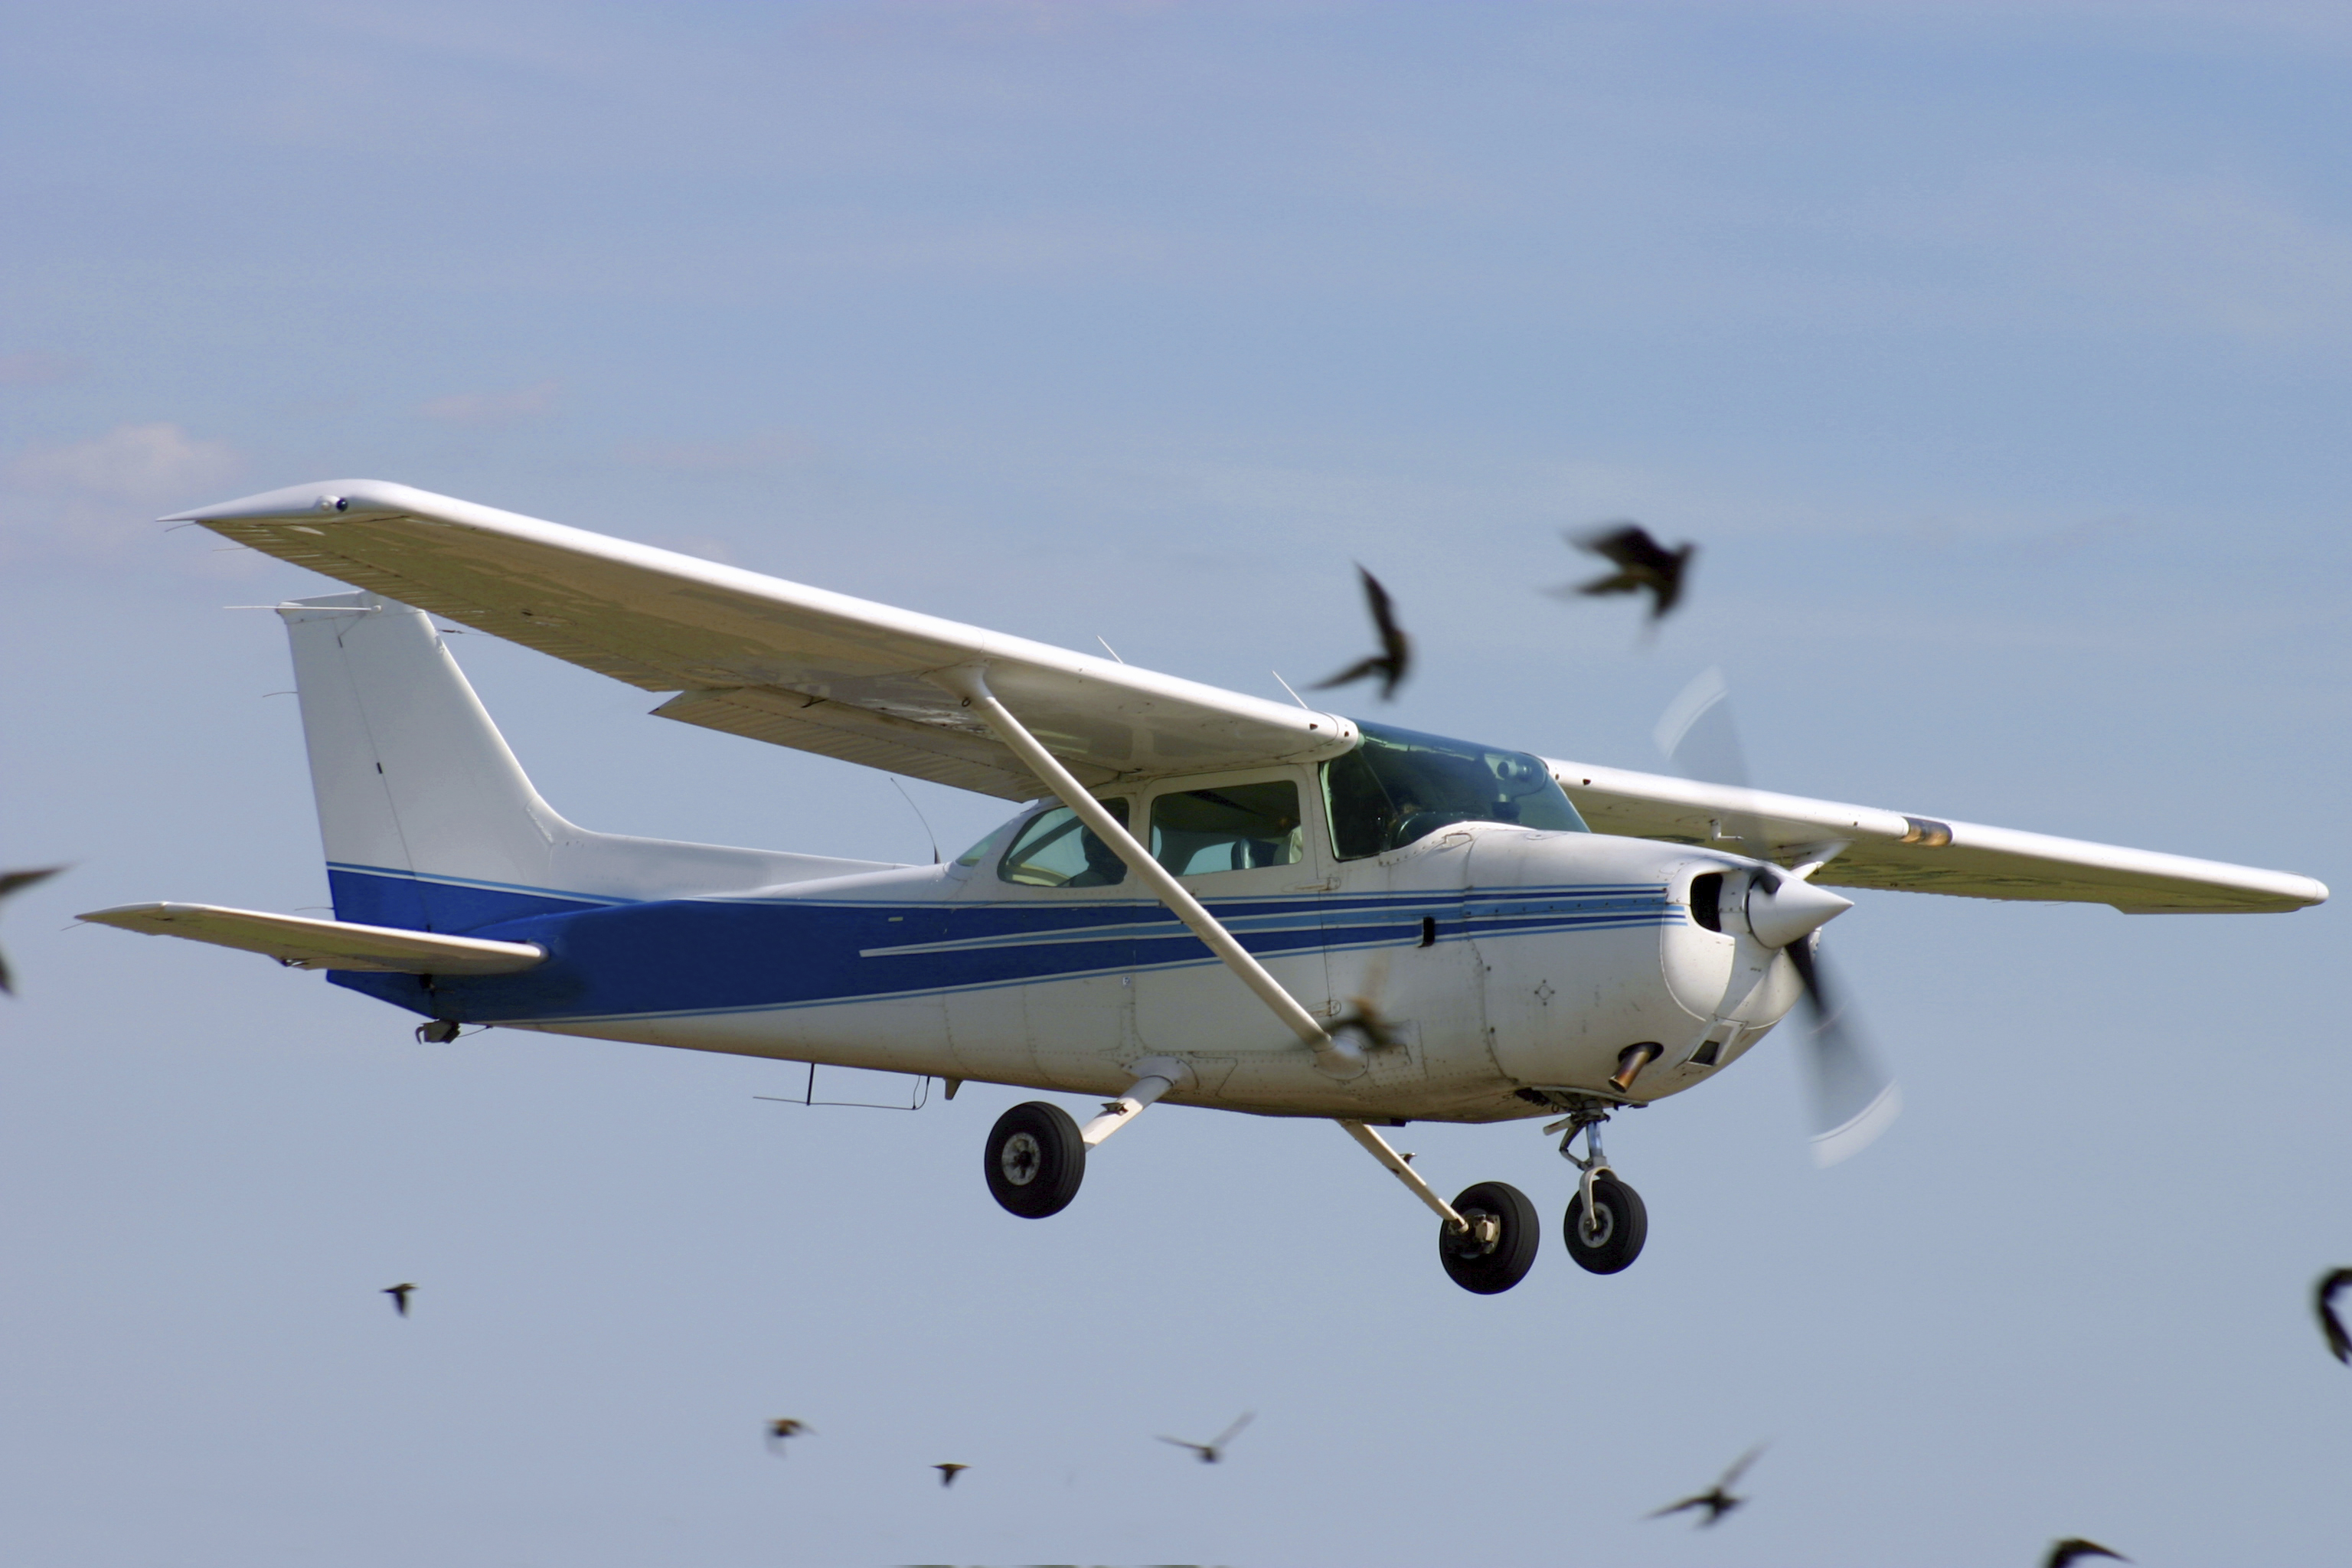 Faa Wildlife Strike Reporting Continues To Increase >> Wildlife Strike Reporting Continues to Increase